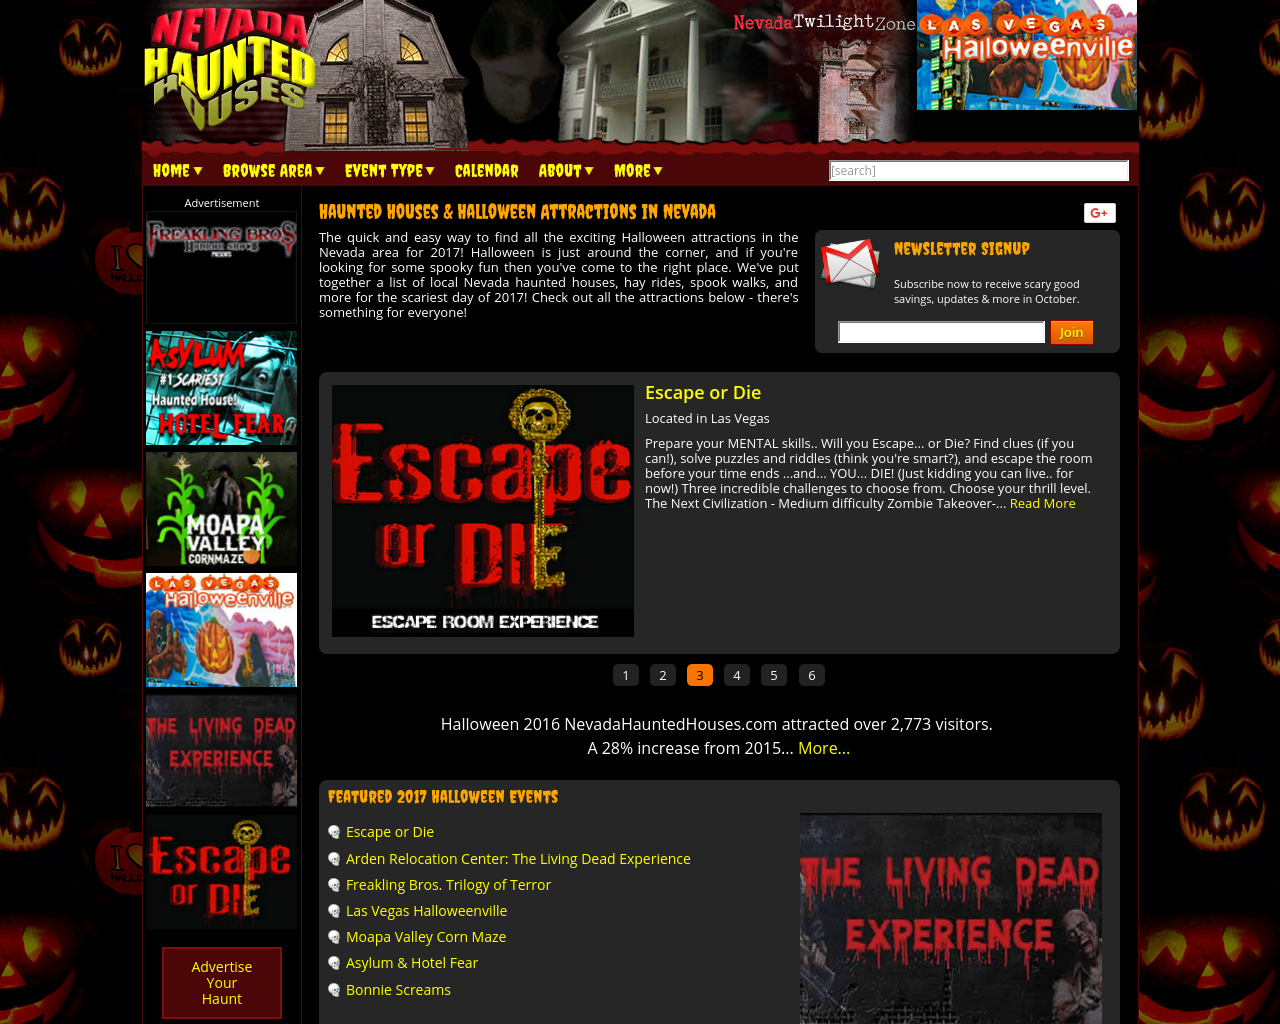 Nevada-Haunted-Houses-Advertising-Reviews-Pricing